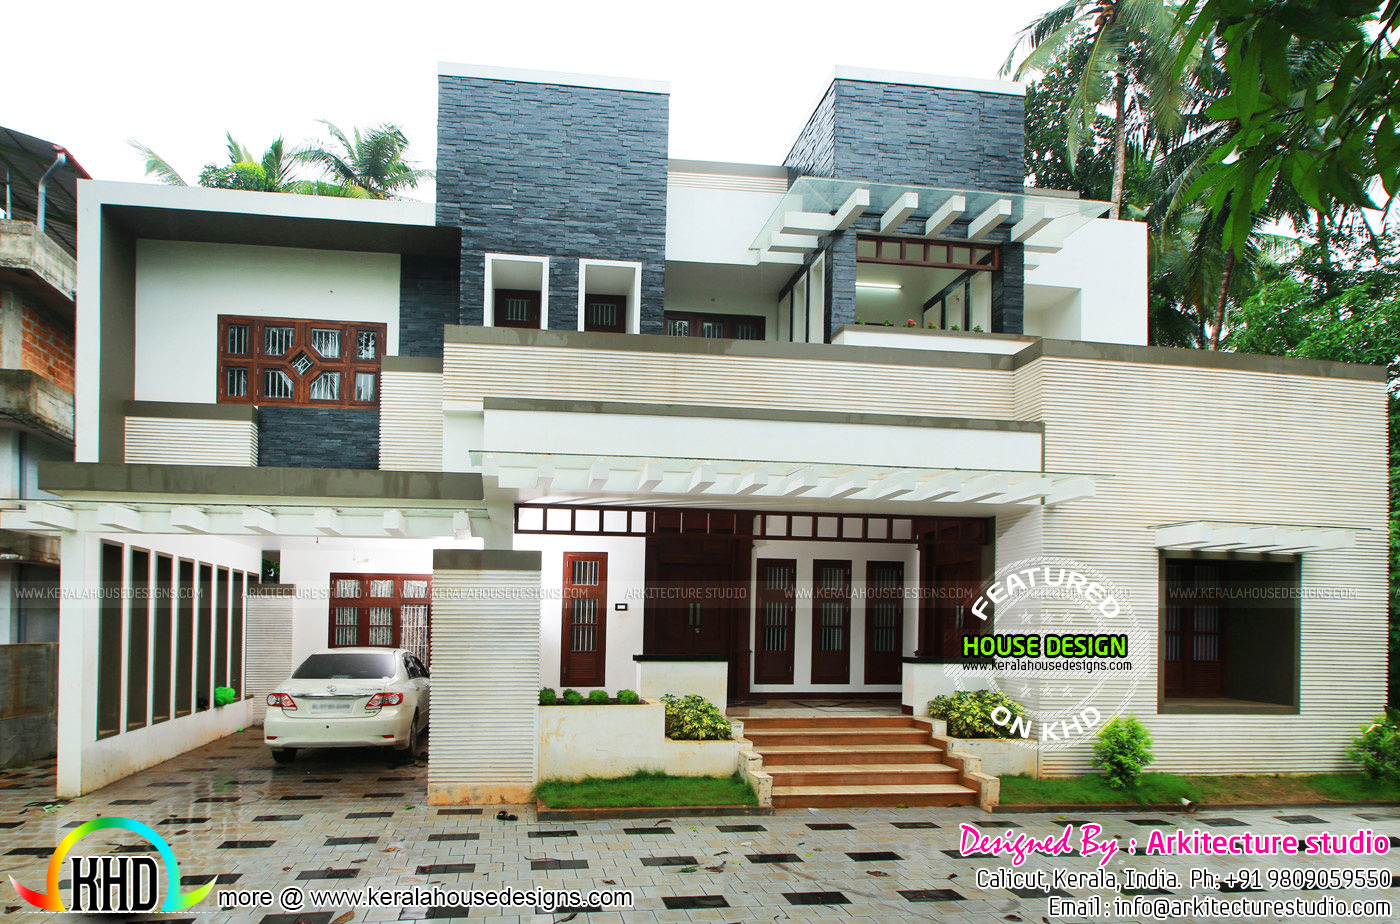 5000 sq ft house work finished kerala home design and for 5000 sq ft modern house plans